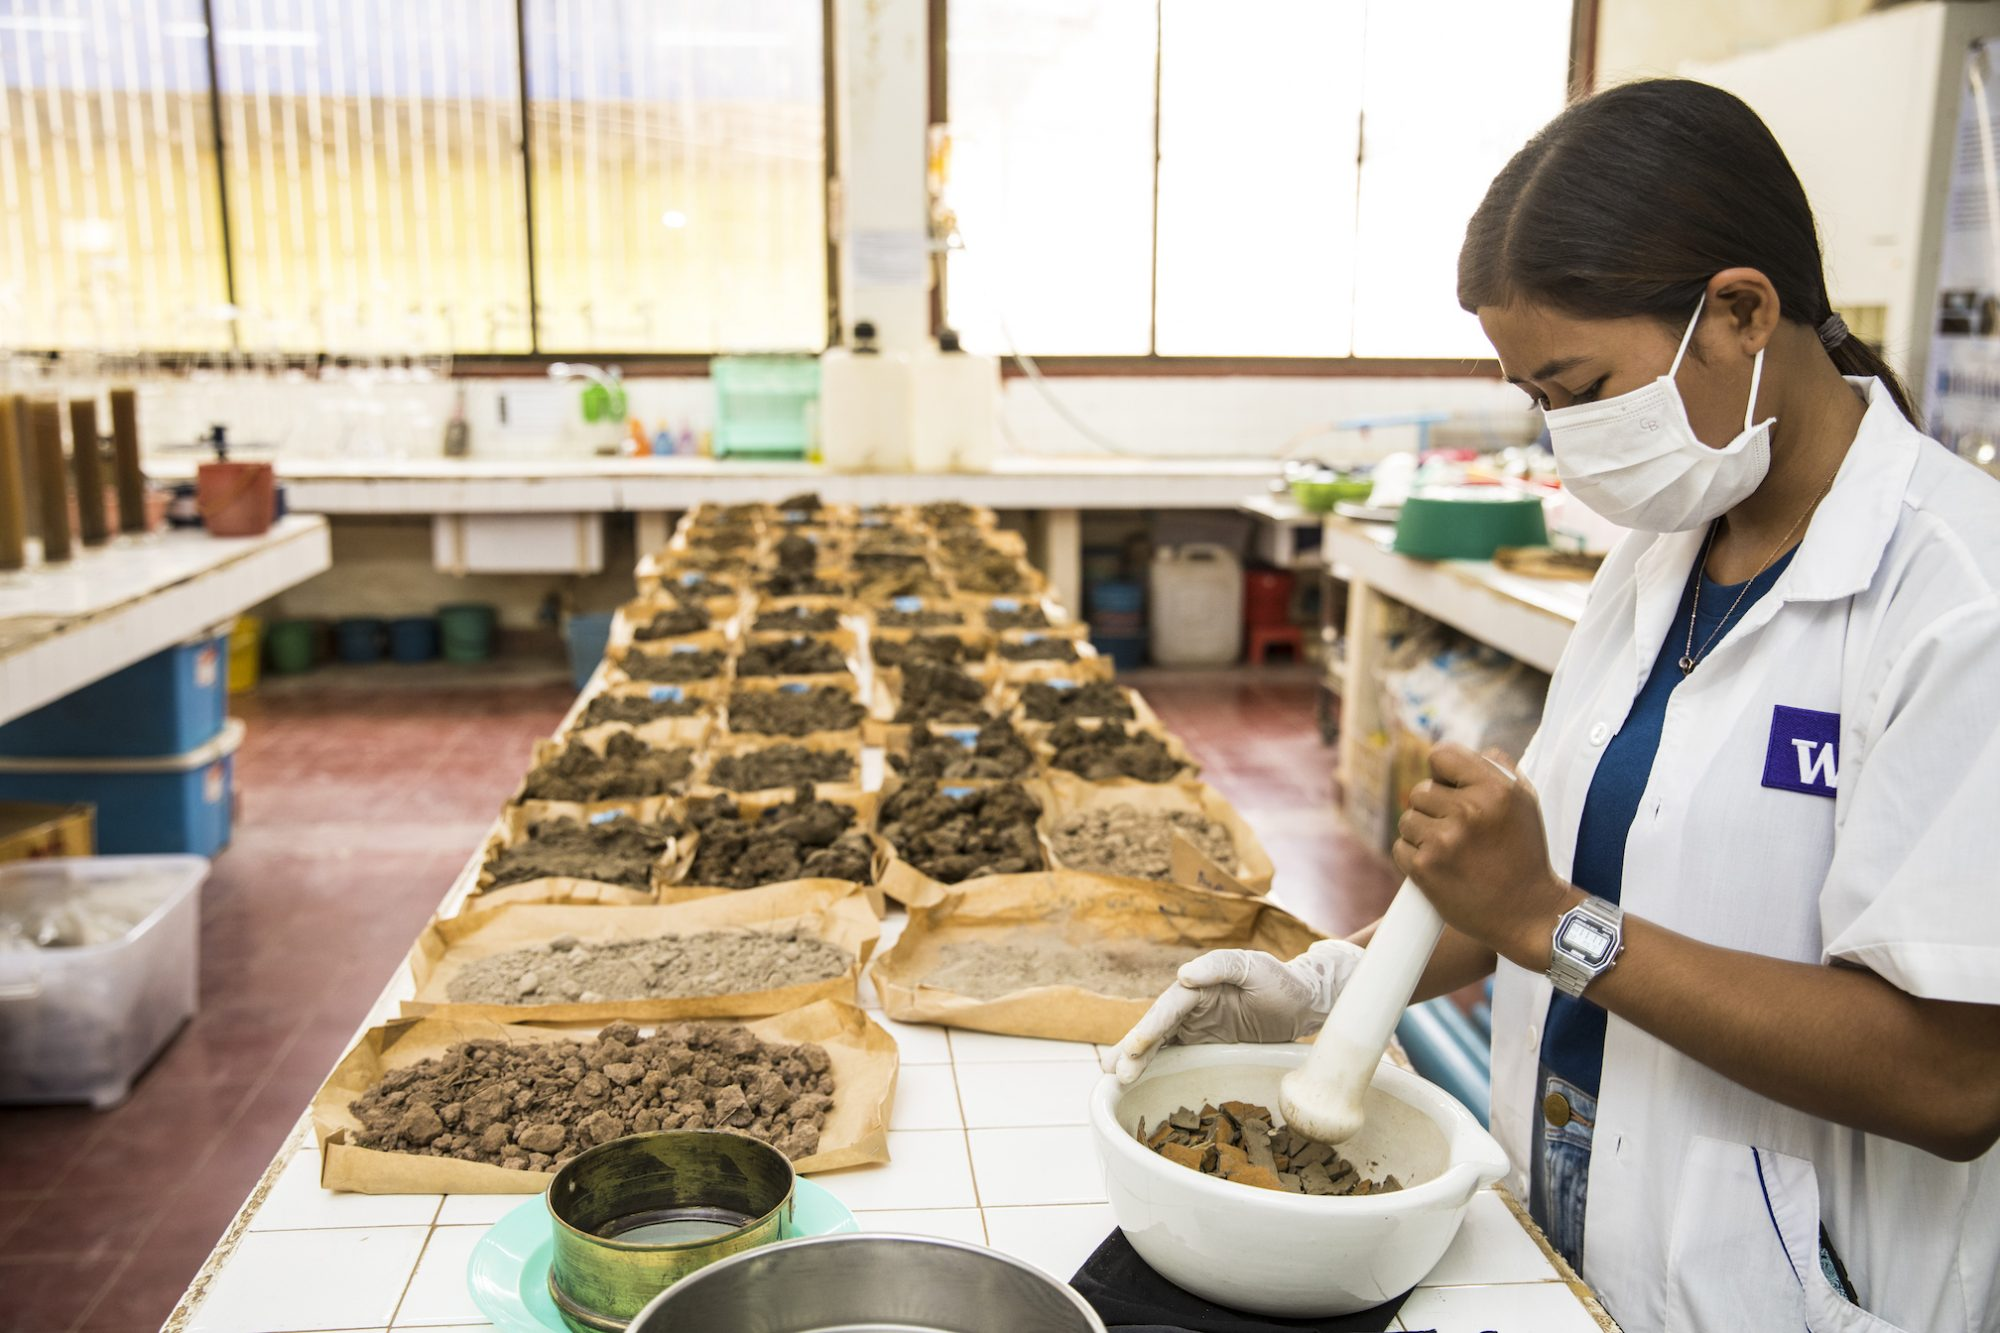 A woman wears a lab coat and mask and breaks up soil in a large mortar and pestle on a long table